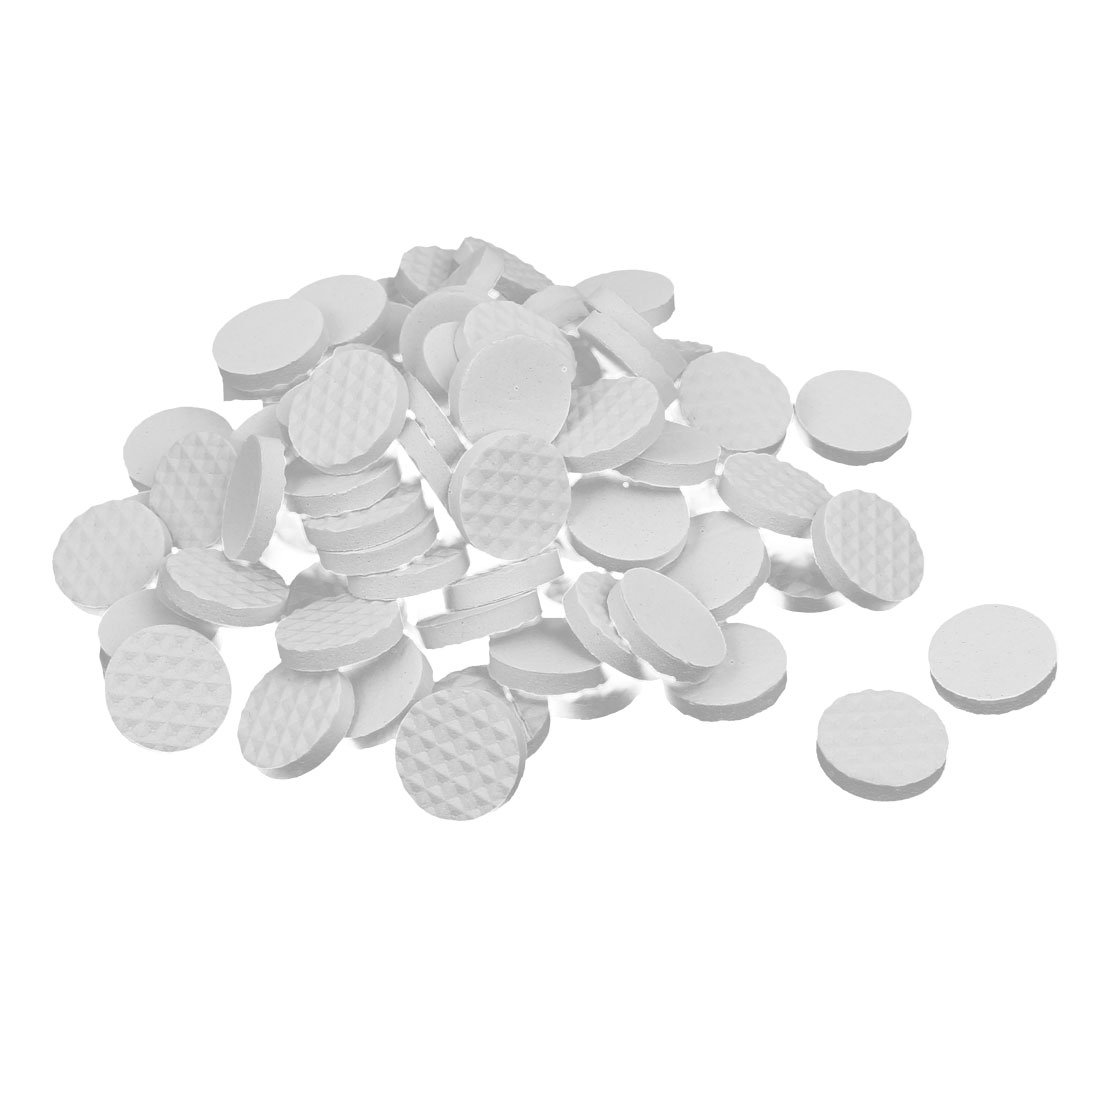 18mm Dia Rubber Self Adhesive Anti-Skid Furniture Protection Pads White 88pcs